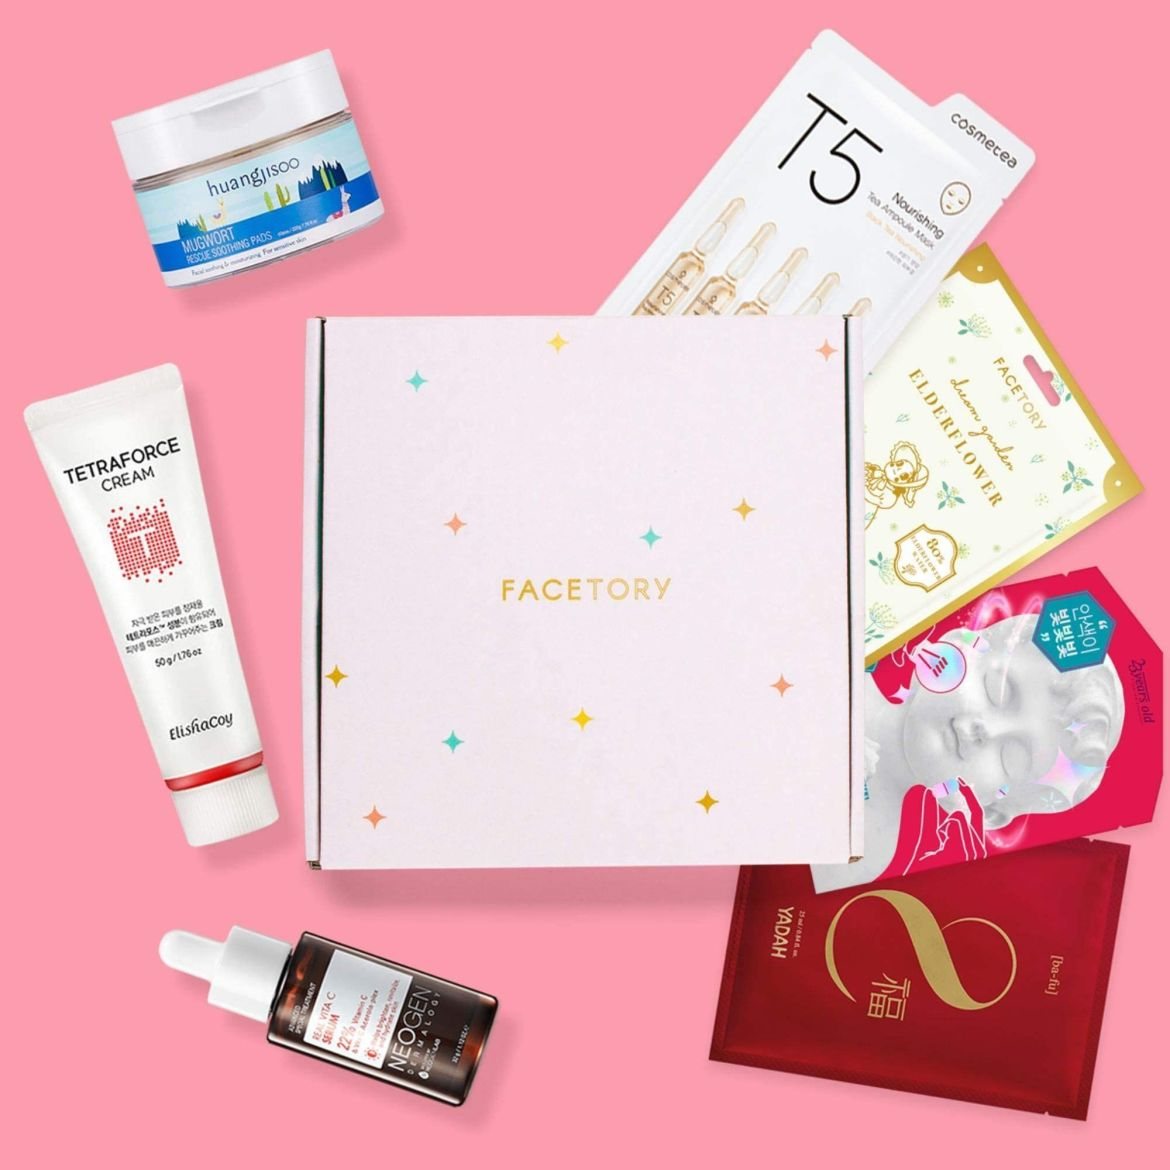 Try a new subscription box for cheap with this Prime Day deal